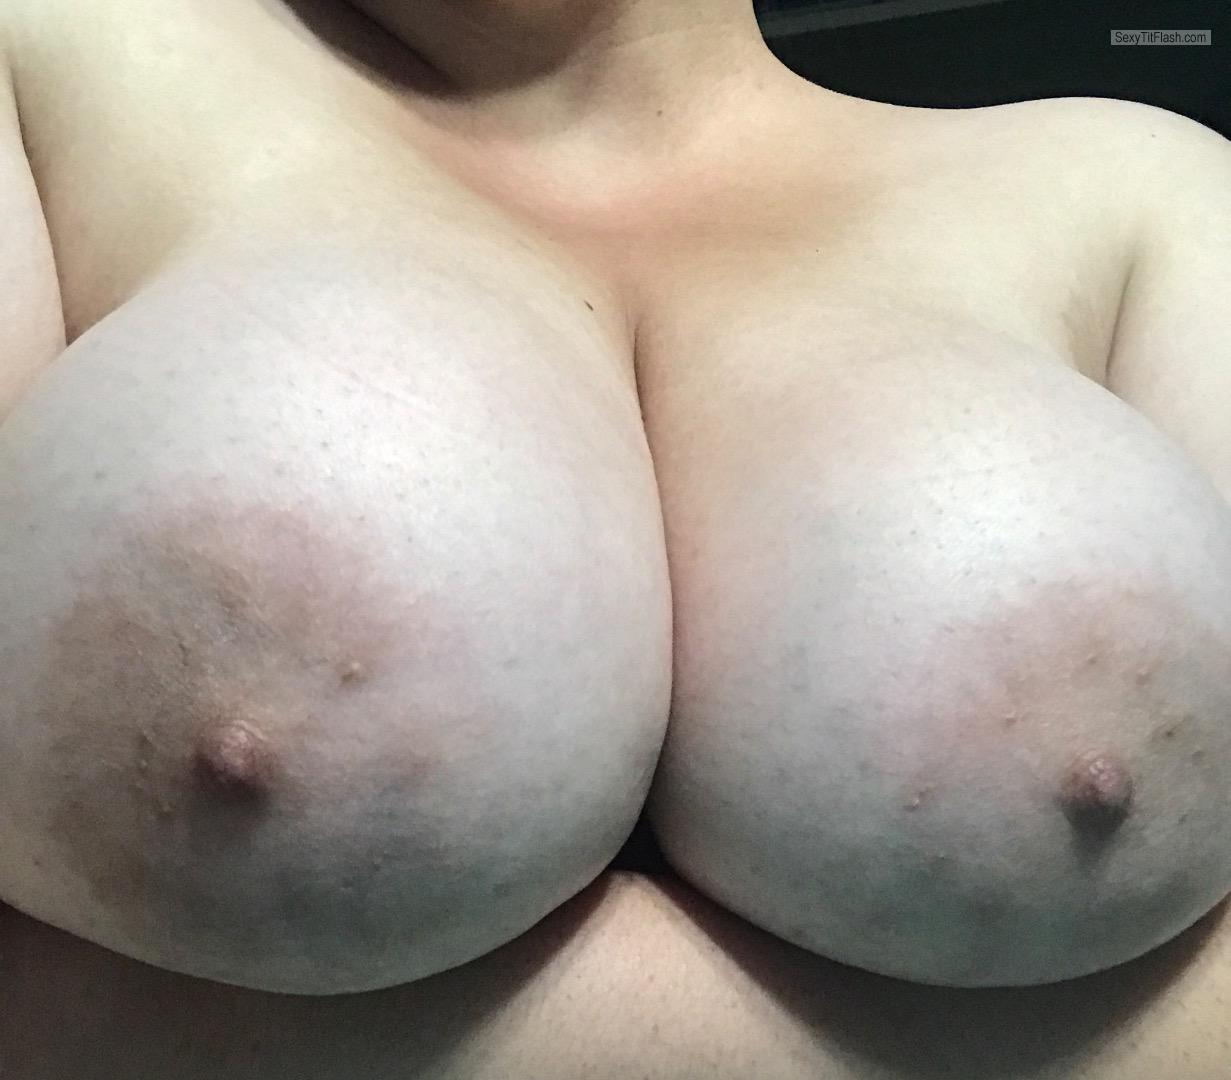 My Very big Tits Selfie by Horny Anon